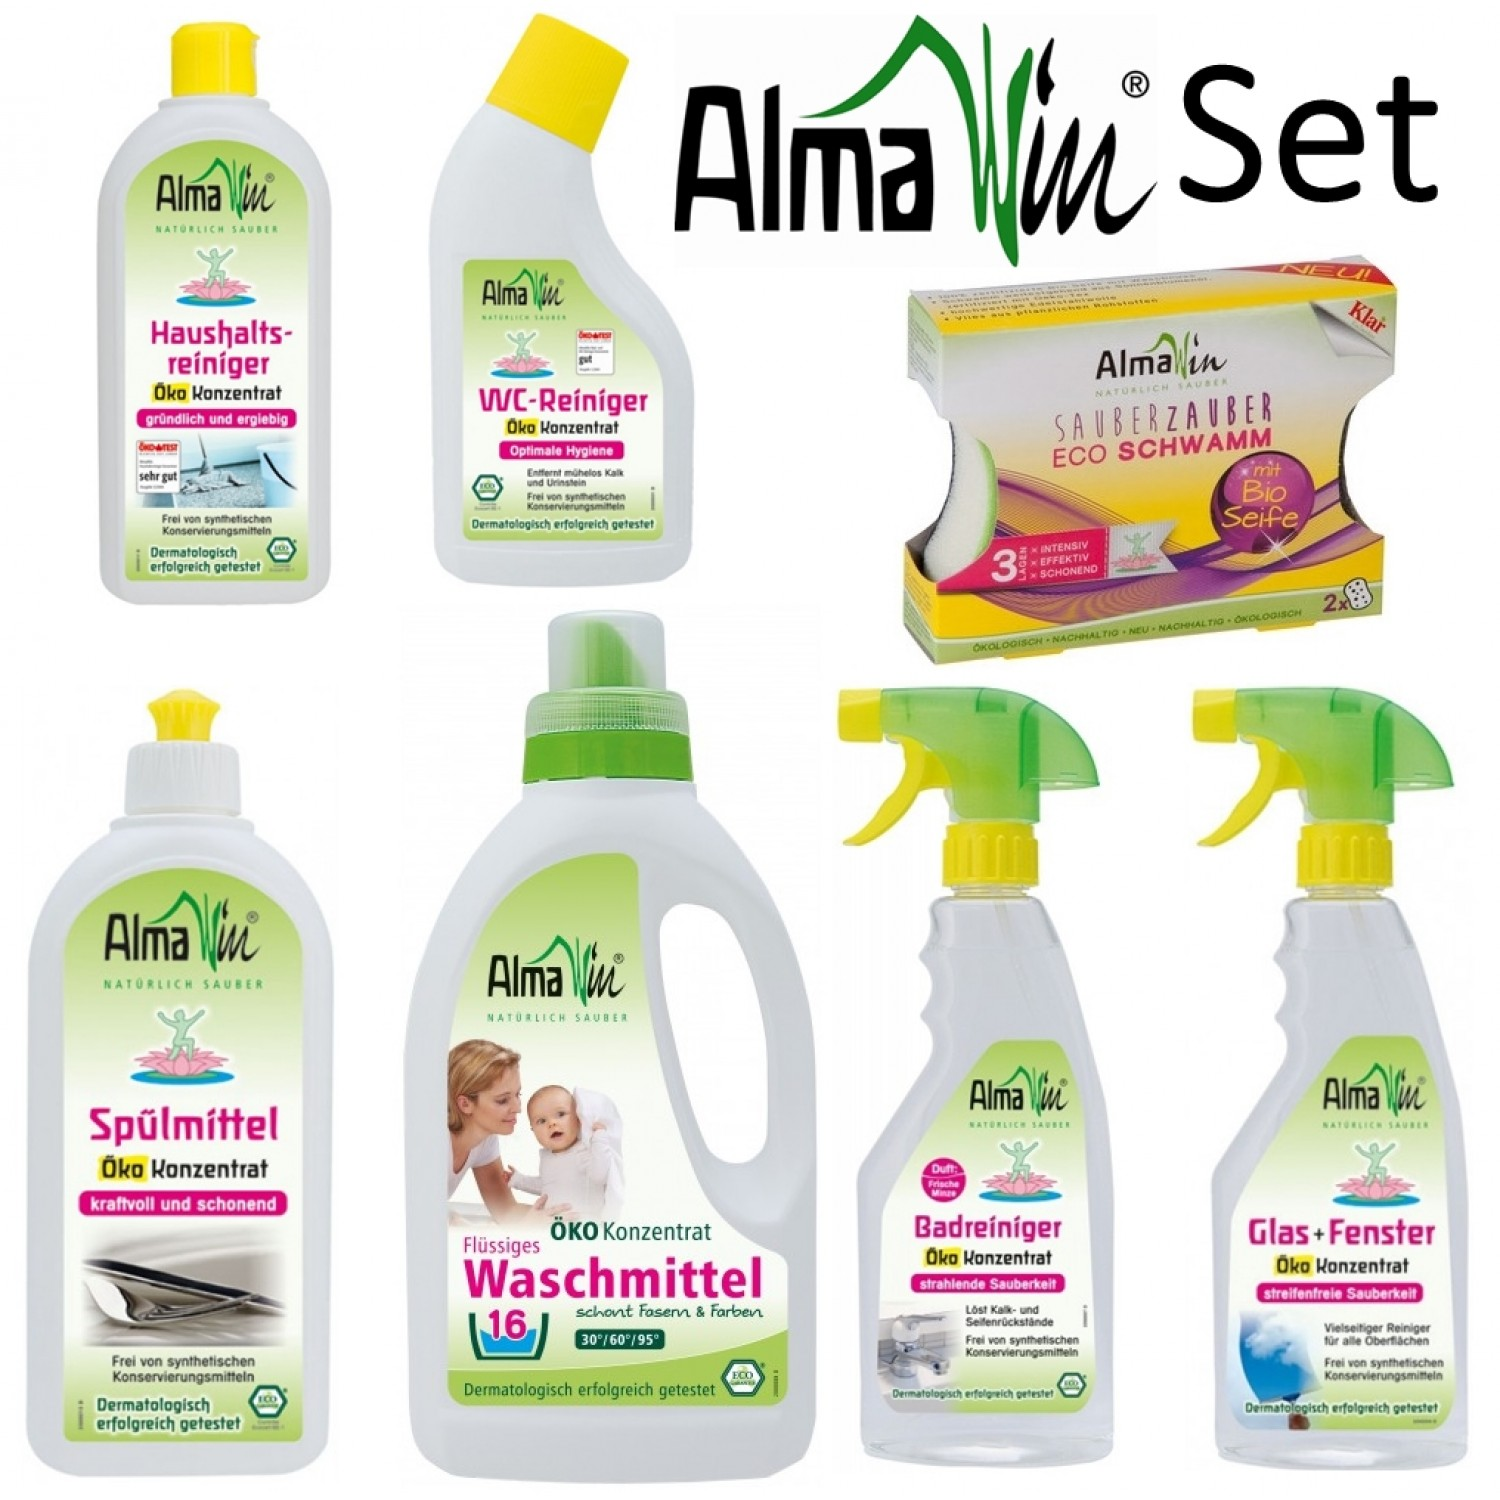 Set of vegan & eco-friendly Cleaner & Detergent | AlmaWin